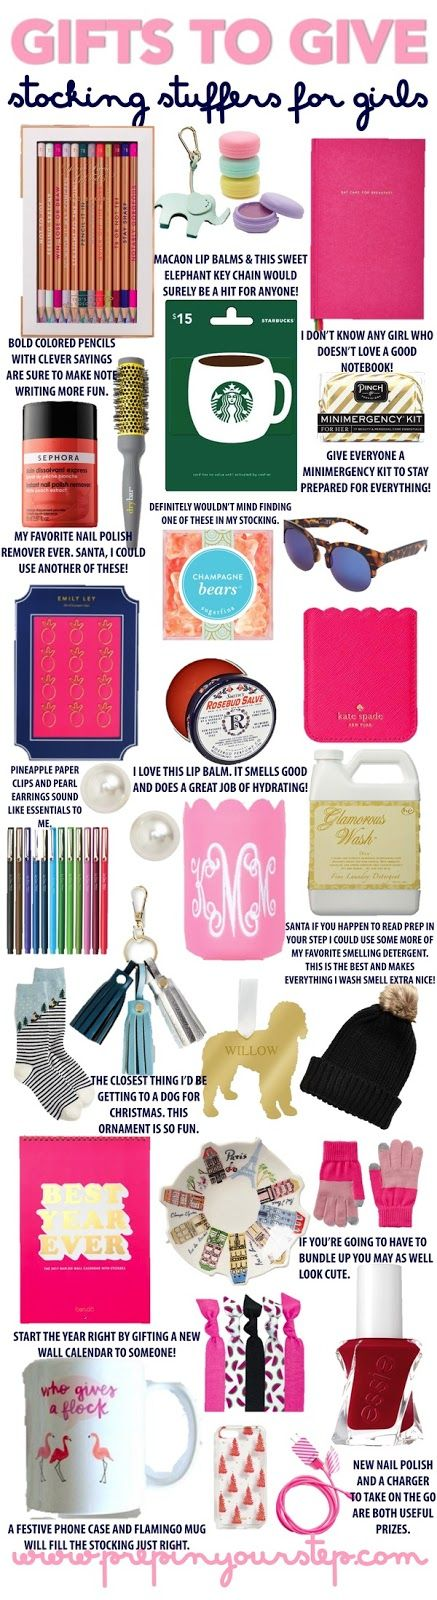 stocking stuffers for girls all under $30 Holiday Gift Ideas